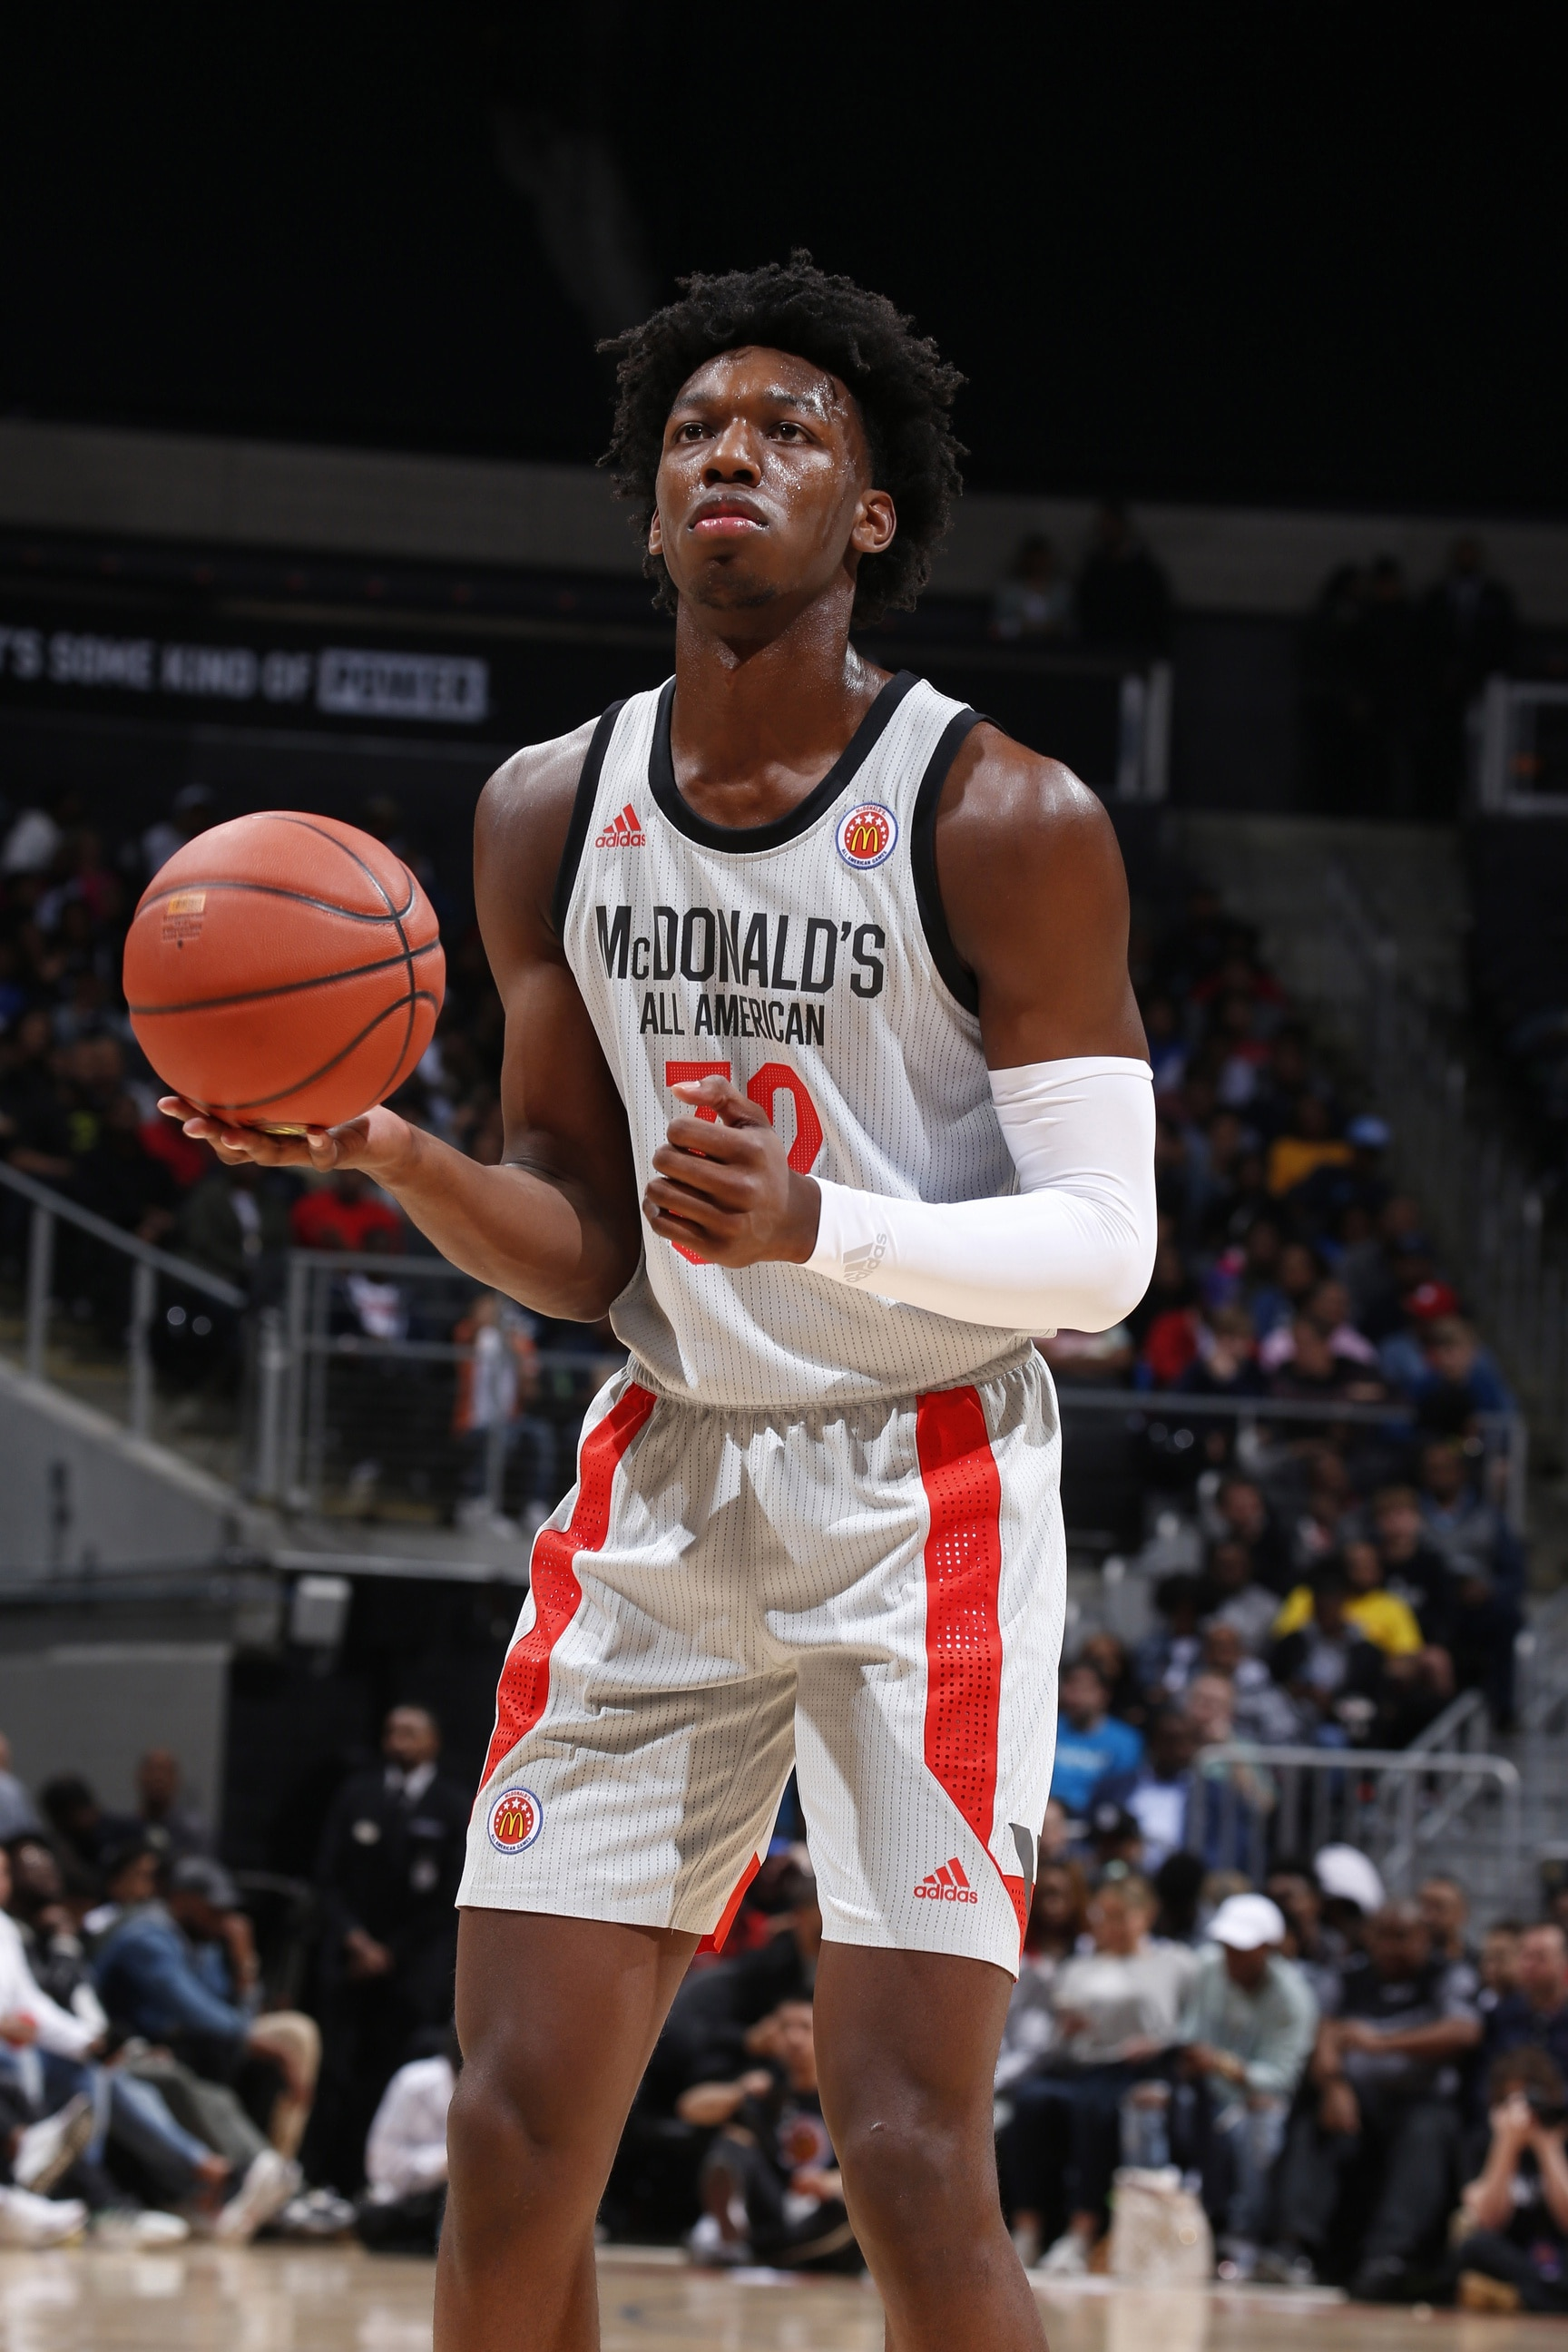 Ncaa Rules Memphis C James Wiseman Ineligible To Play